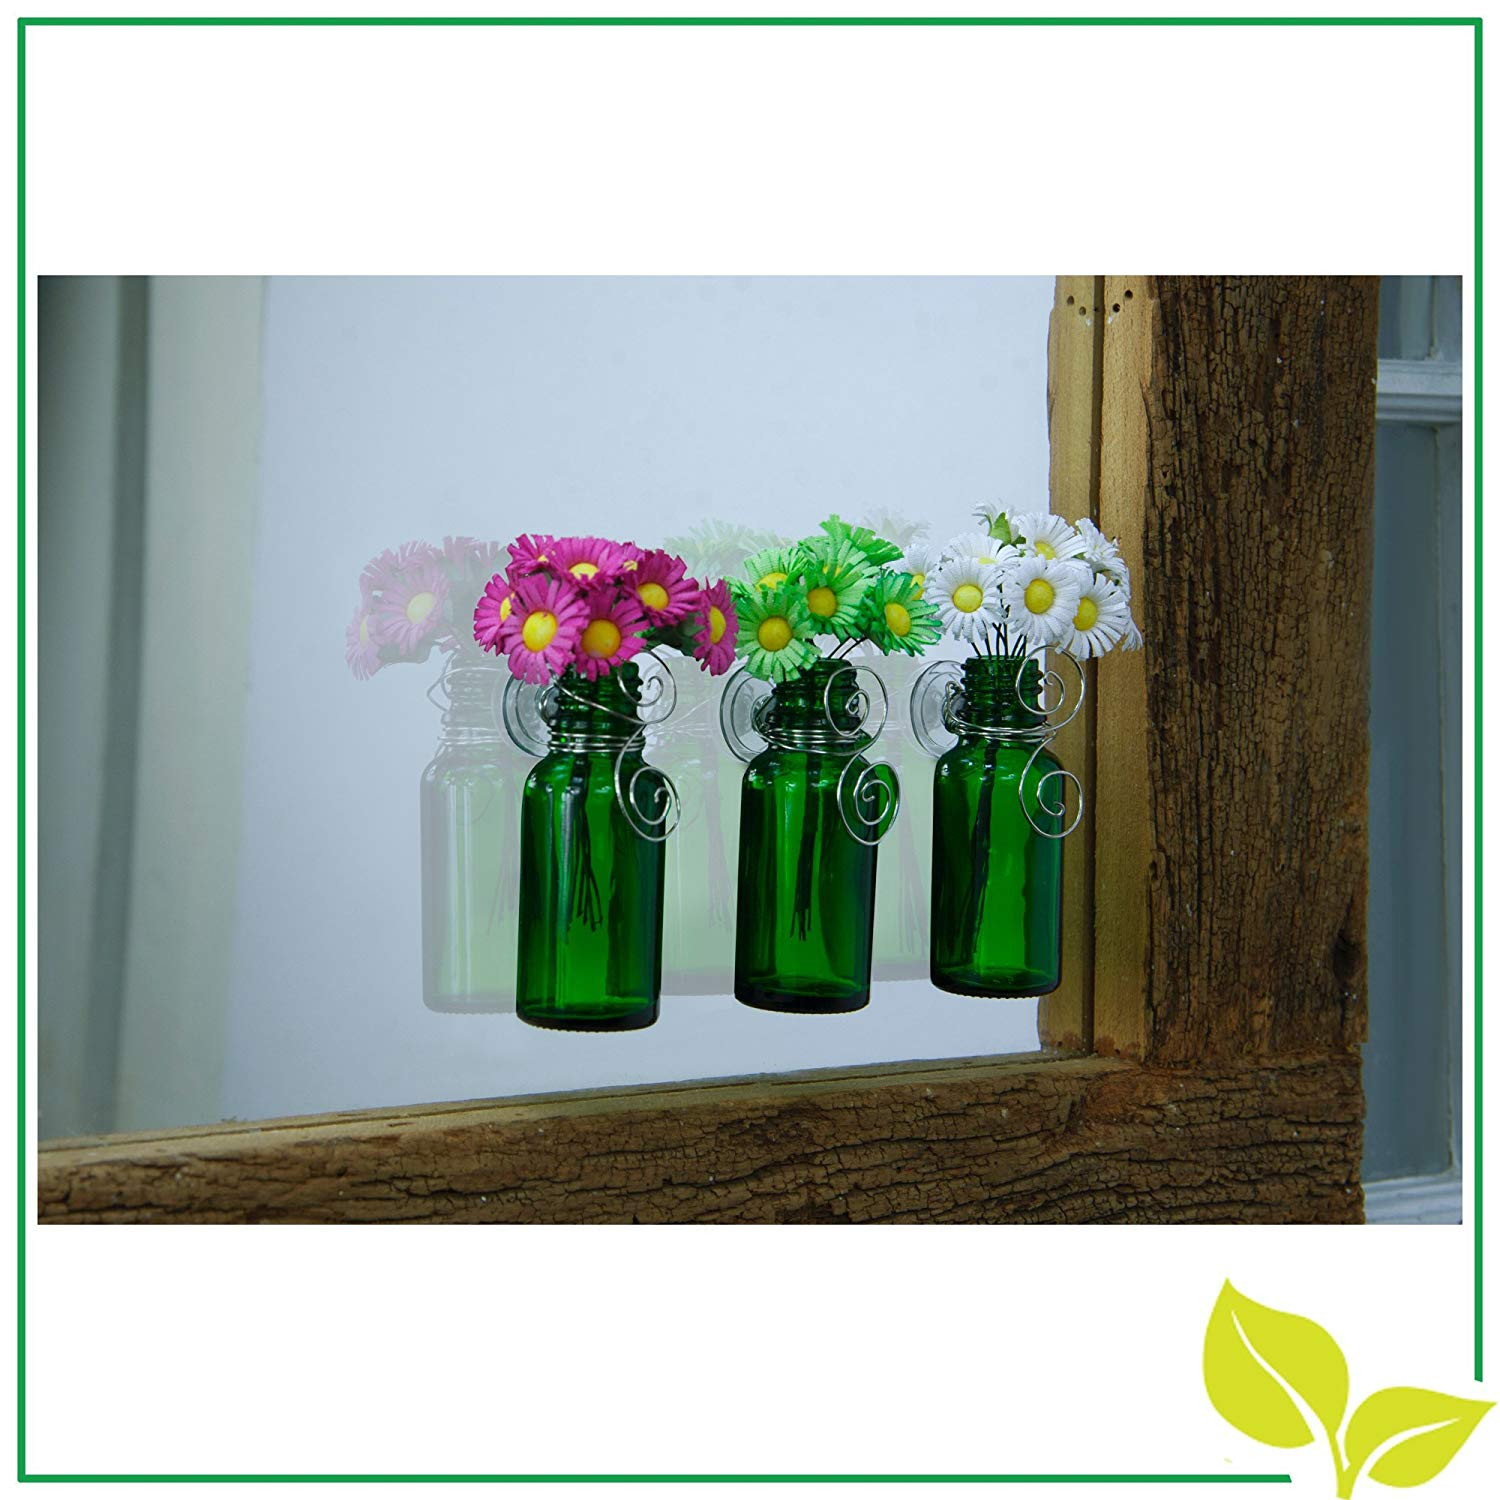 connected glass bud vases of amazon com vazzini mini vase bouquet suction cup bud bottle within amazon com vazzini mini vase bouquet suction cup bud bottle holder with flowers decorative for window mirrors tile wedding party favor get well